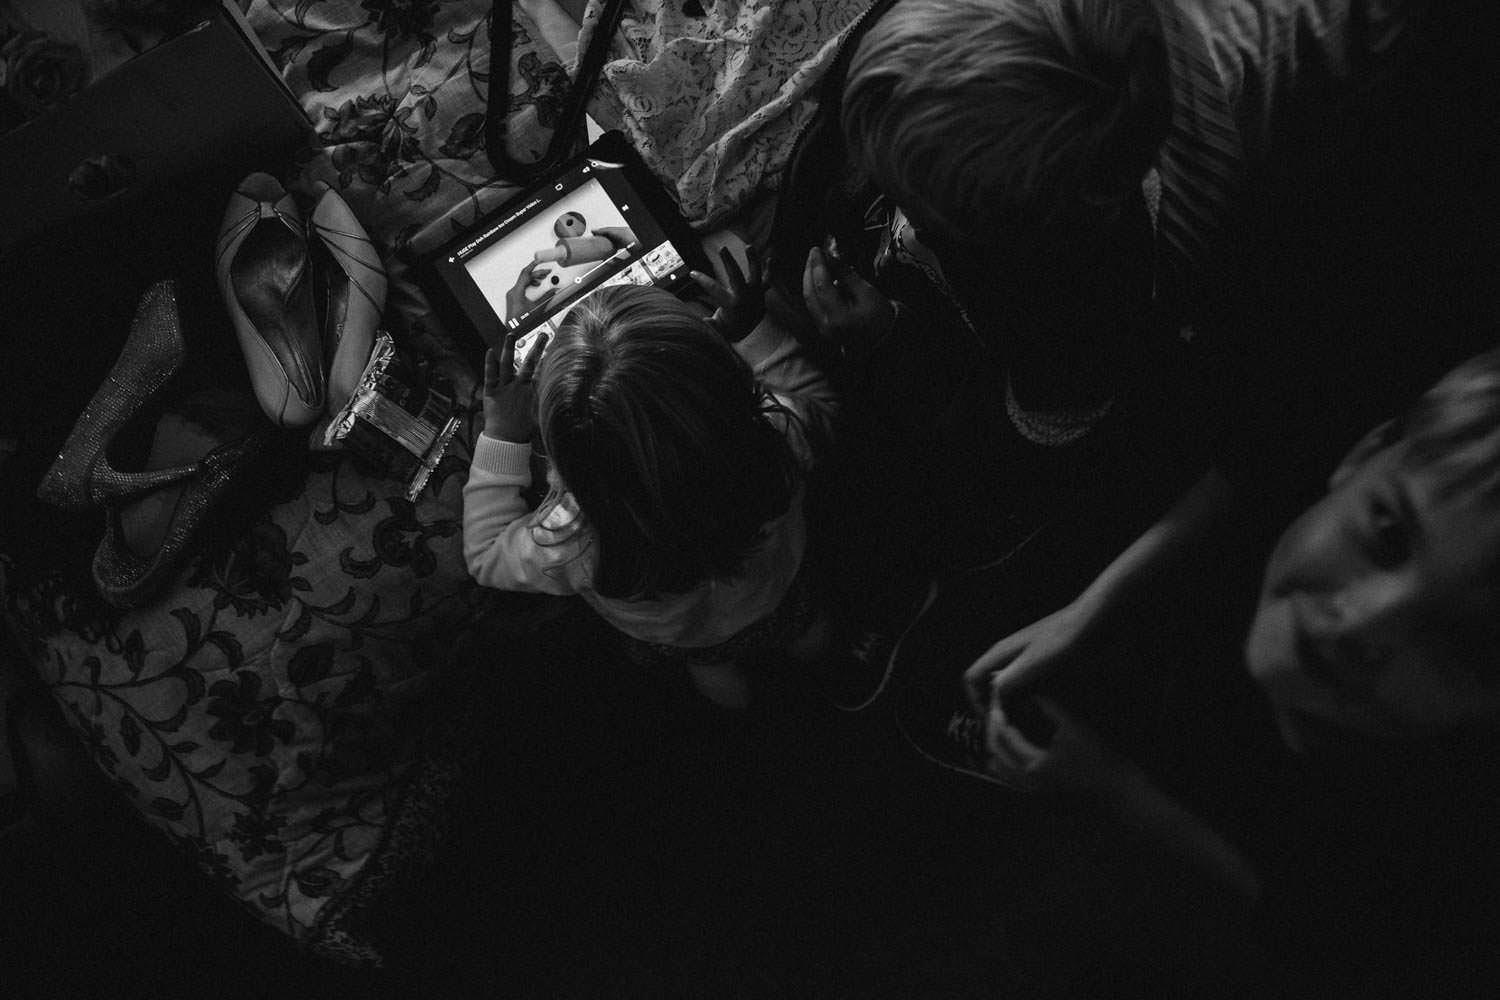 Children playing games before wedding ceremony